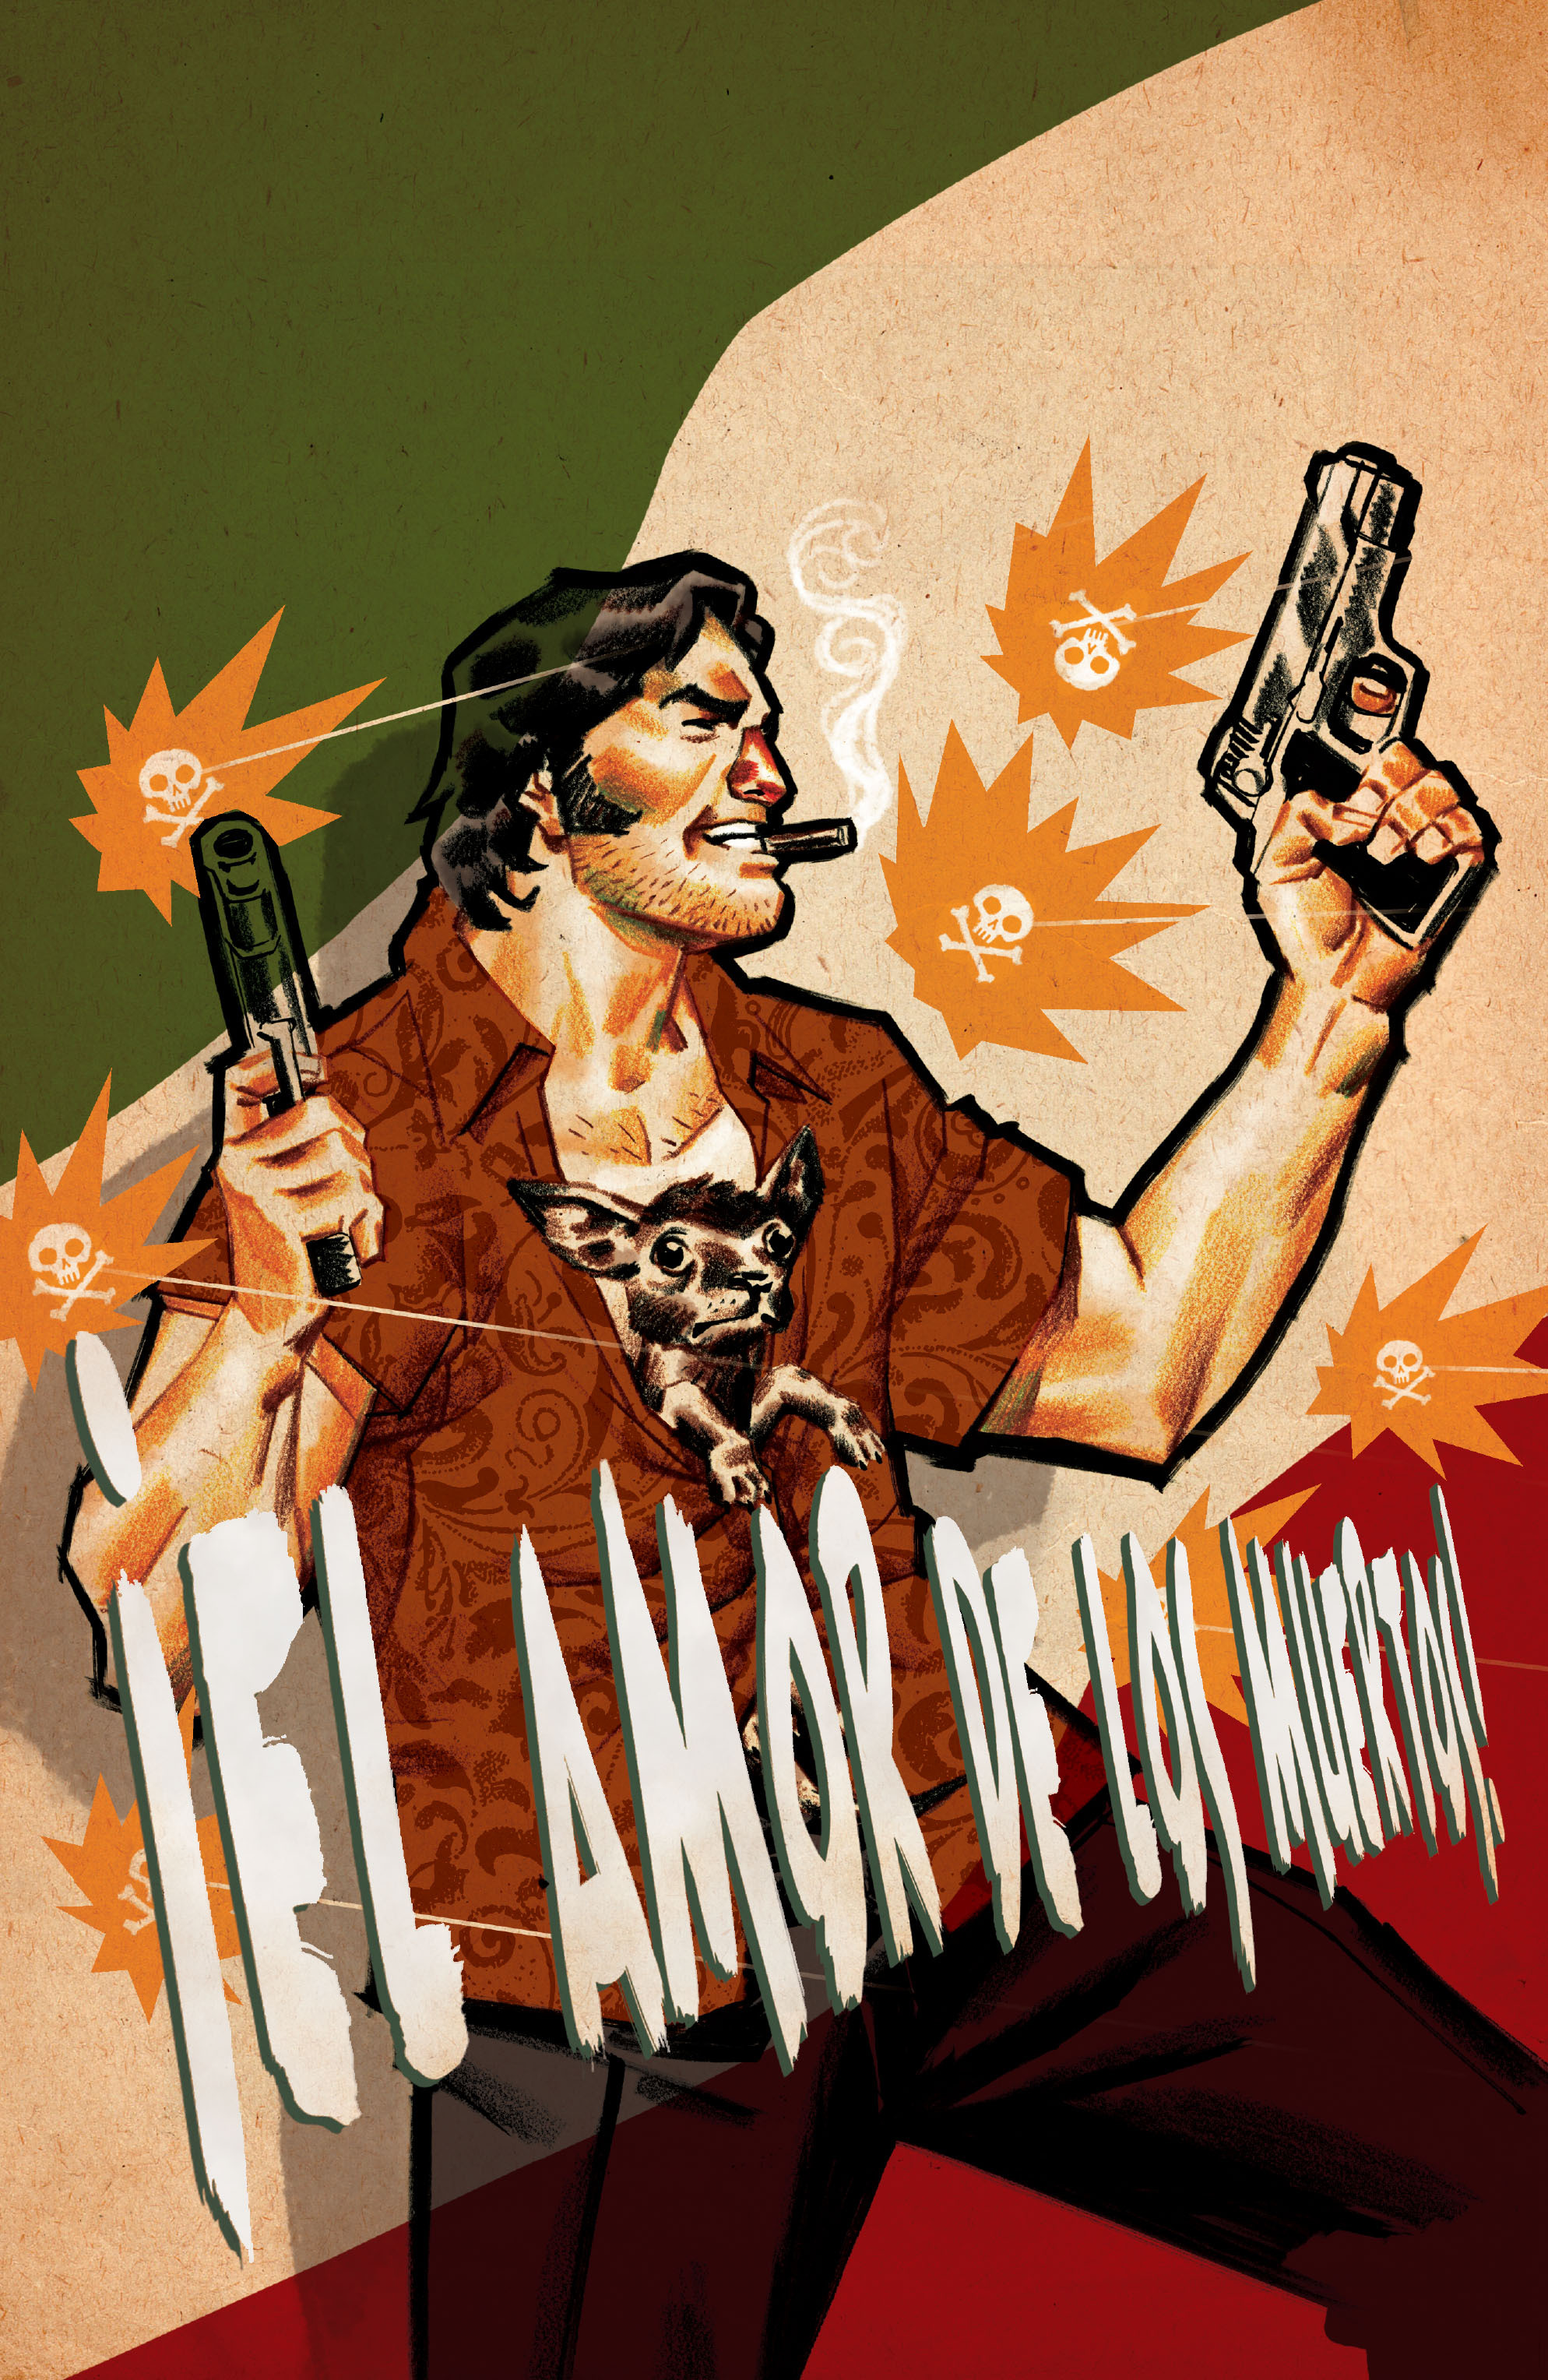 100 Bullets: Brother Lono Full Page 56